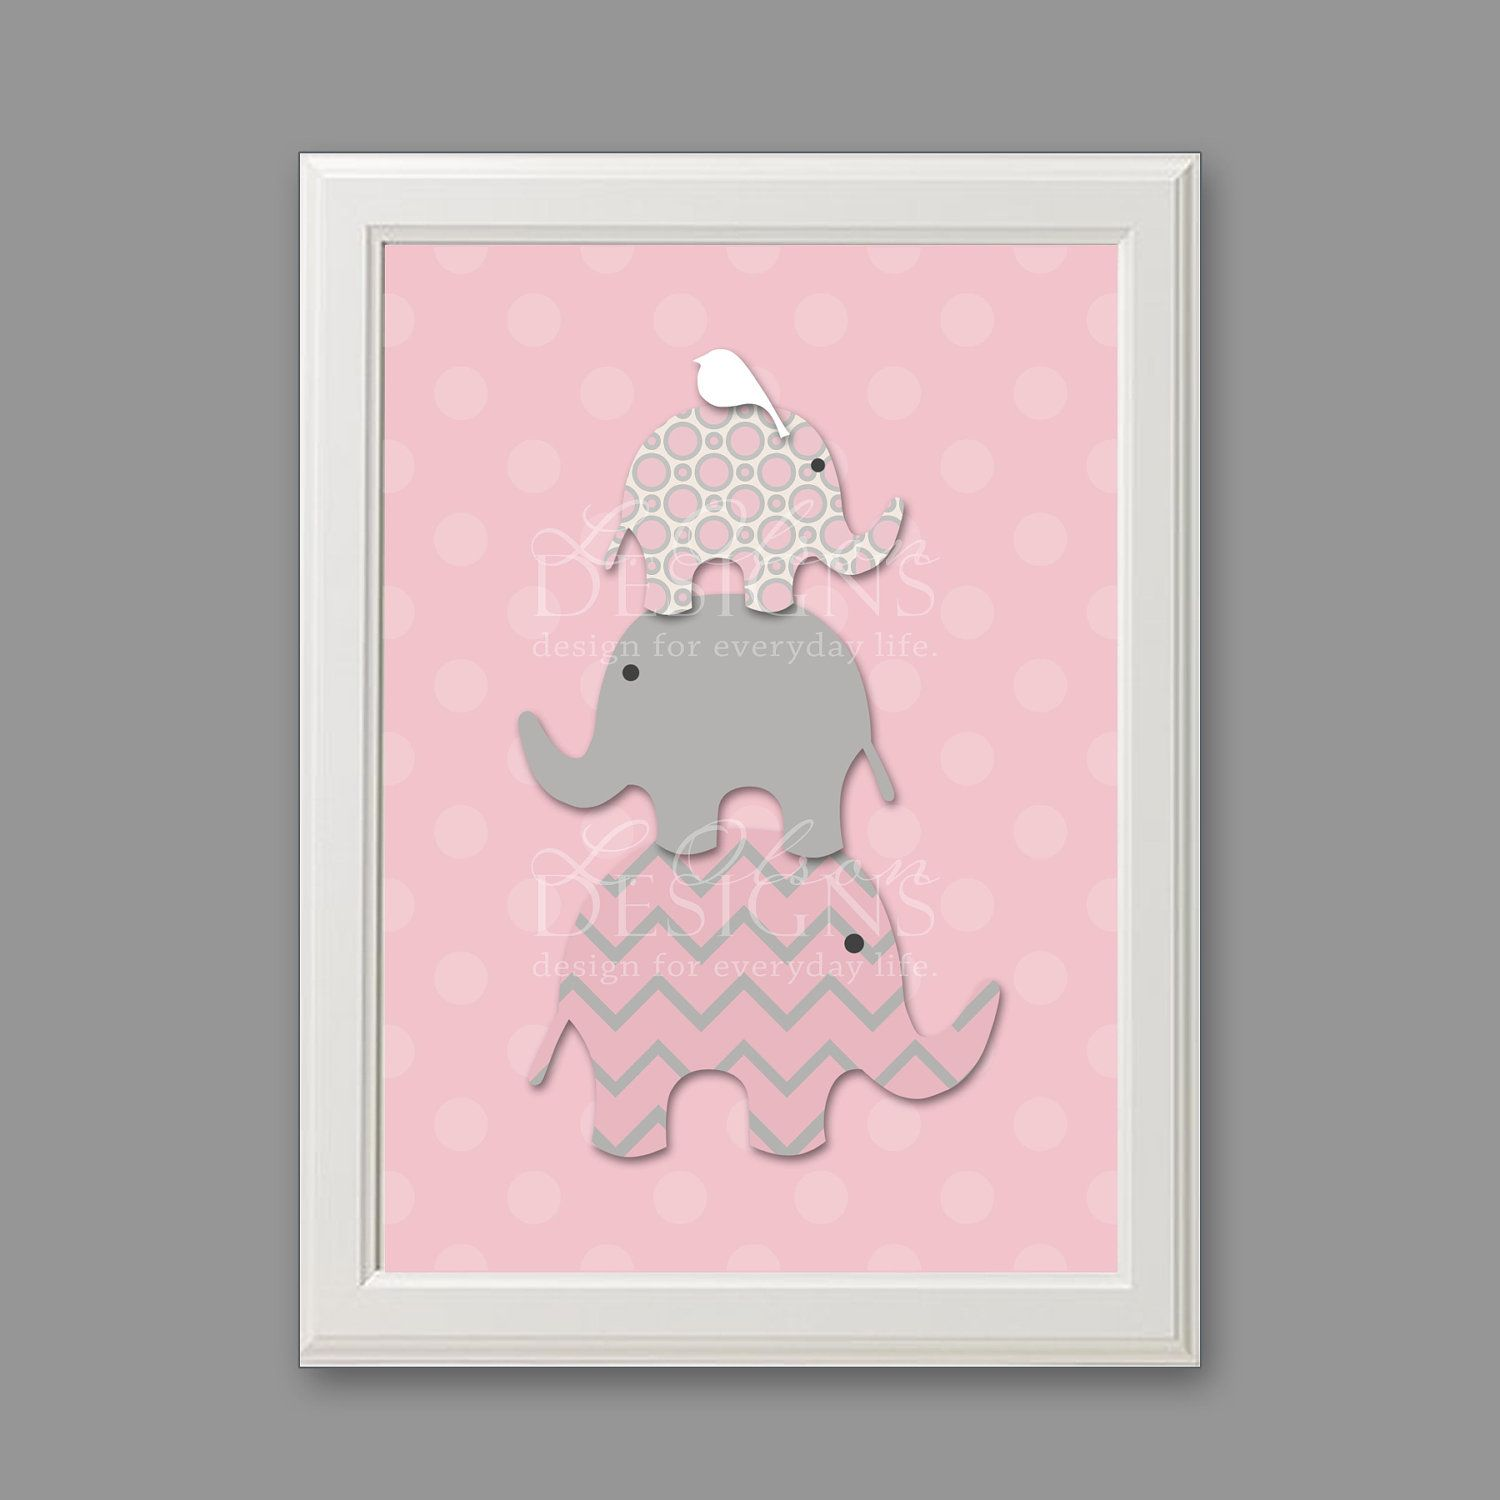 Stacked elephants custom nursery art 8x10 digital print